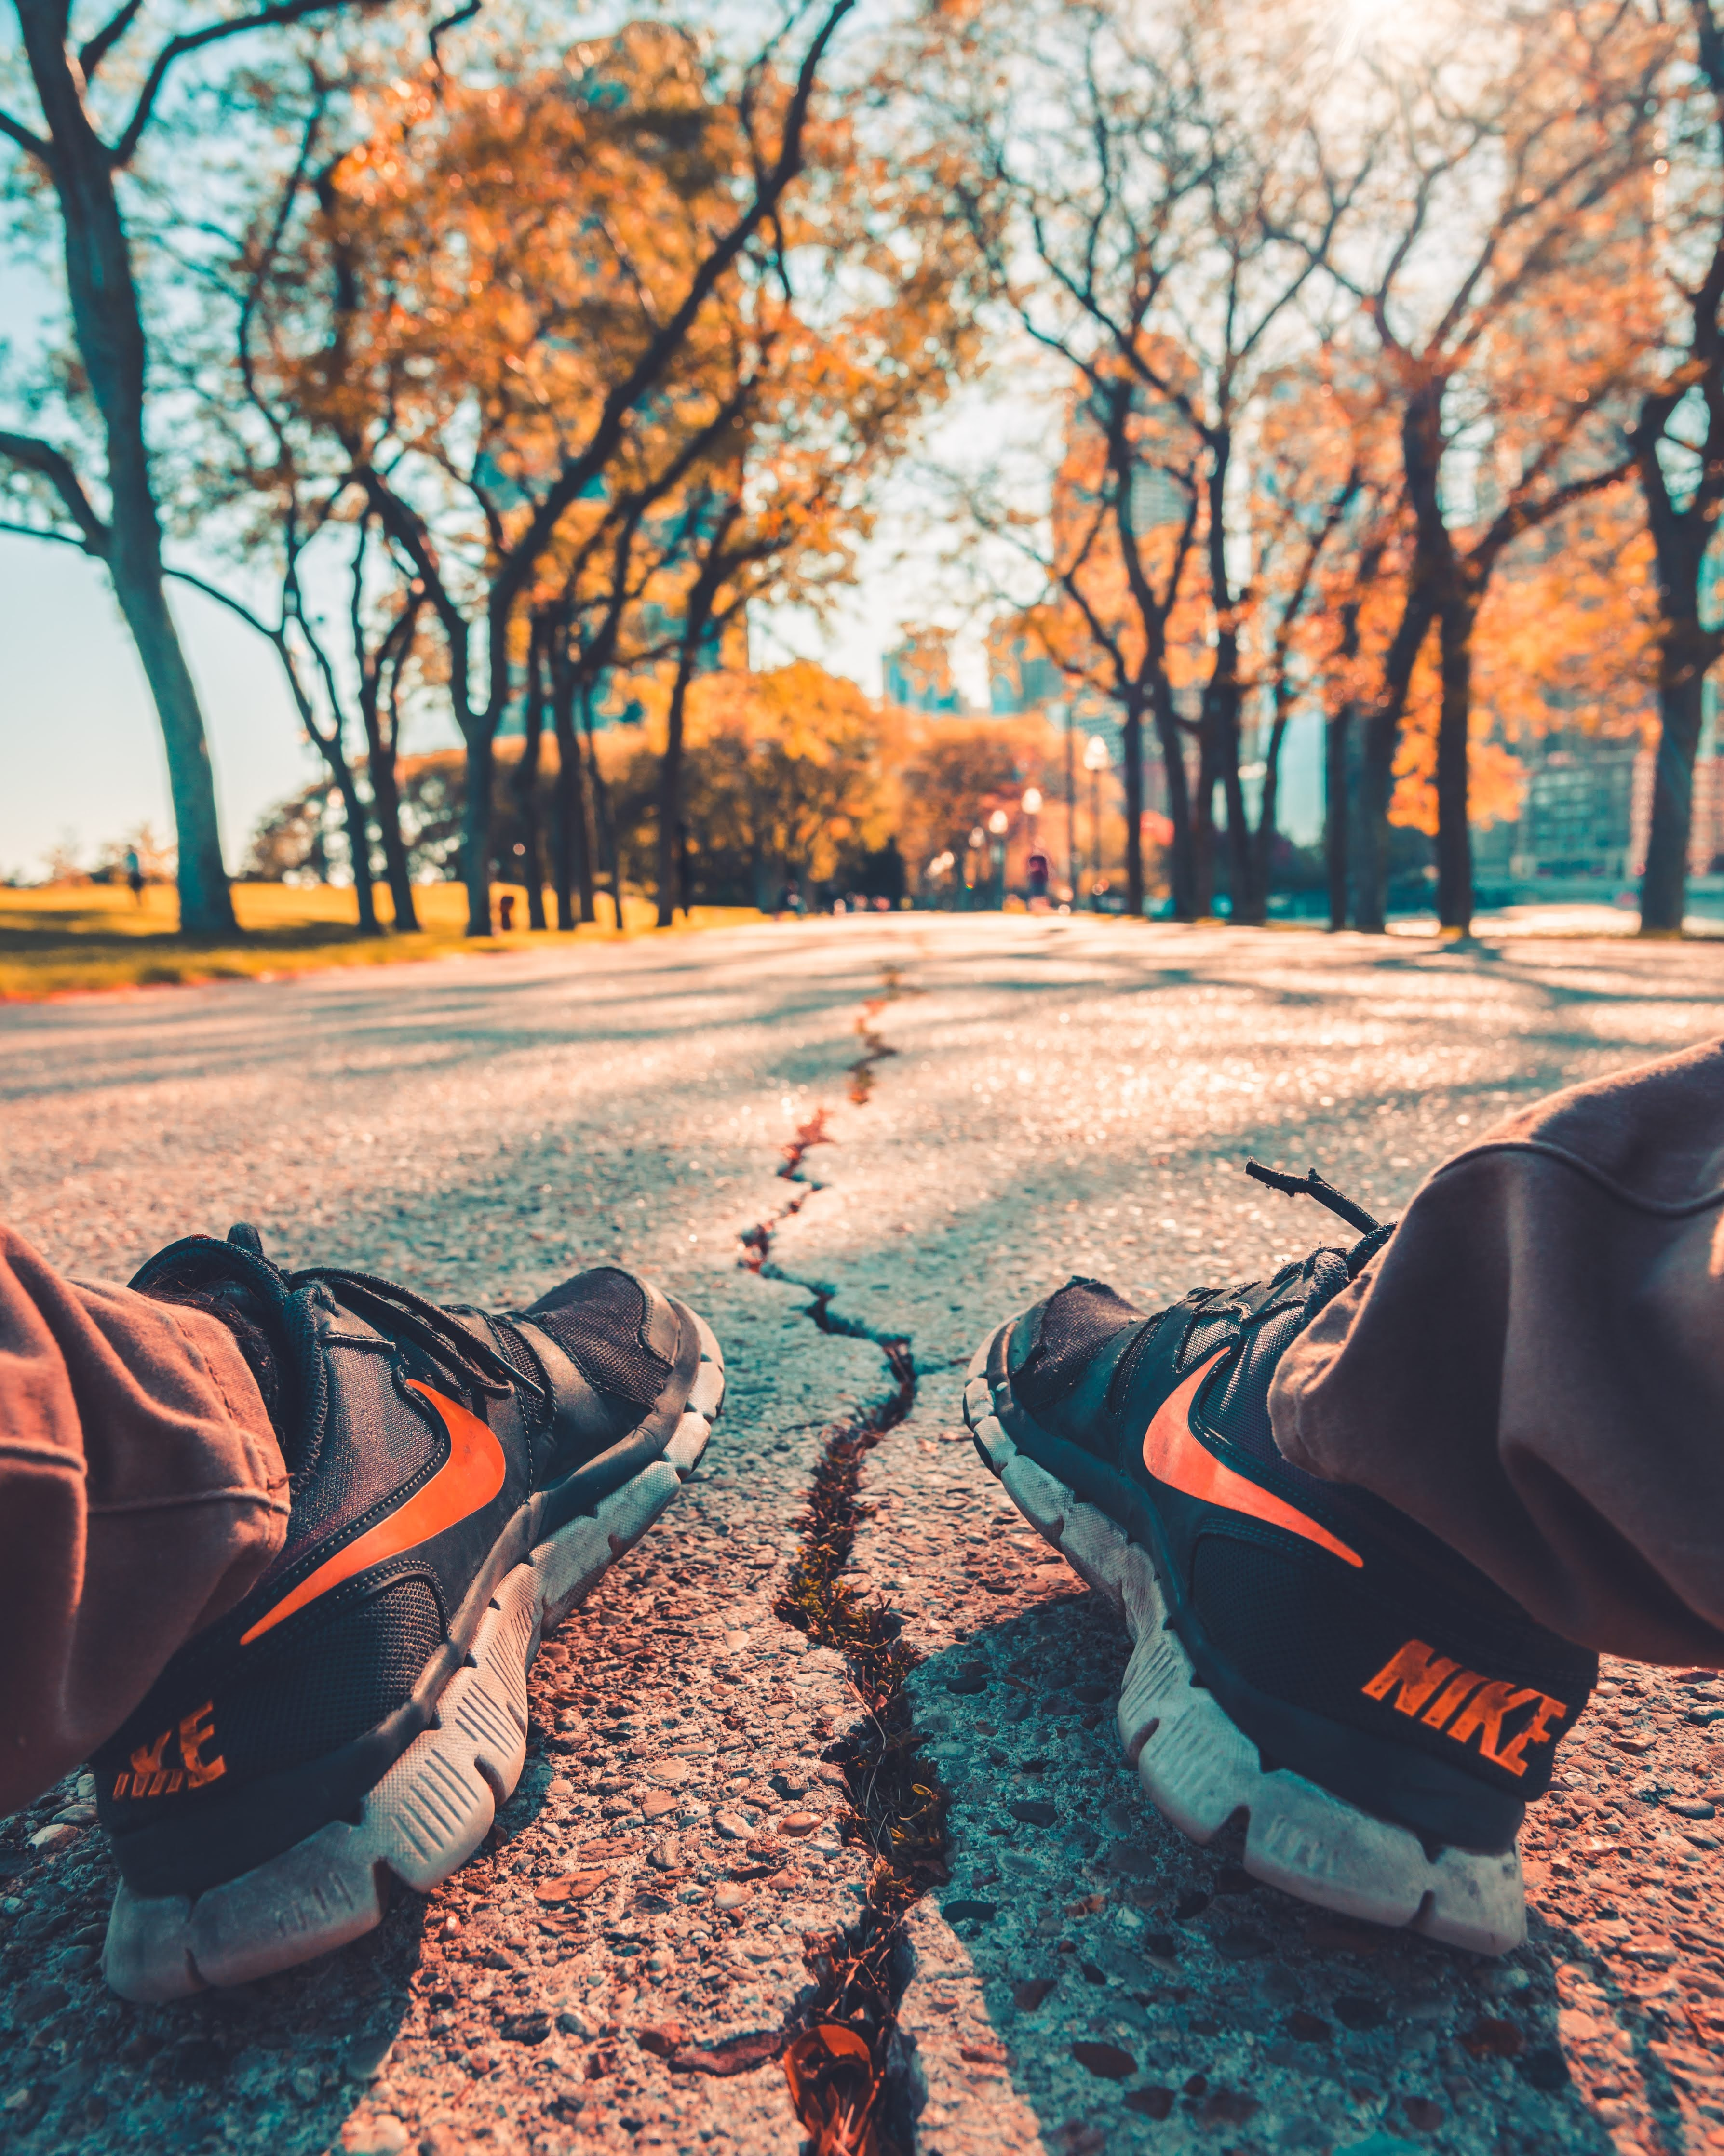 person wearing Nike running shoes sitting on road outdoor